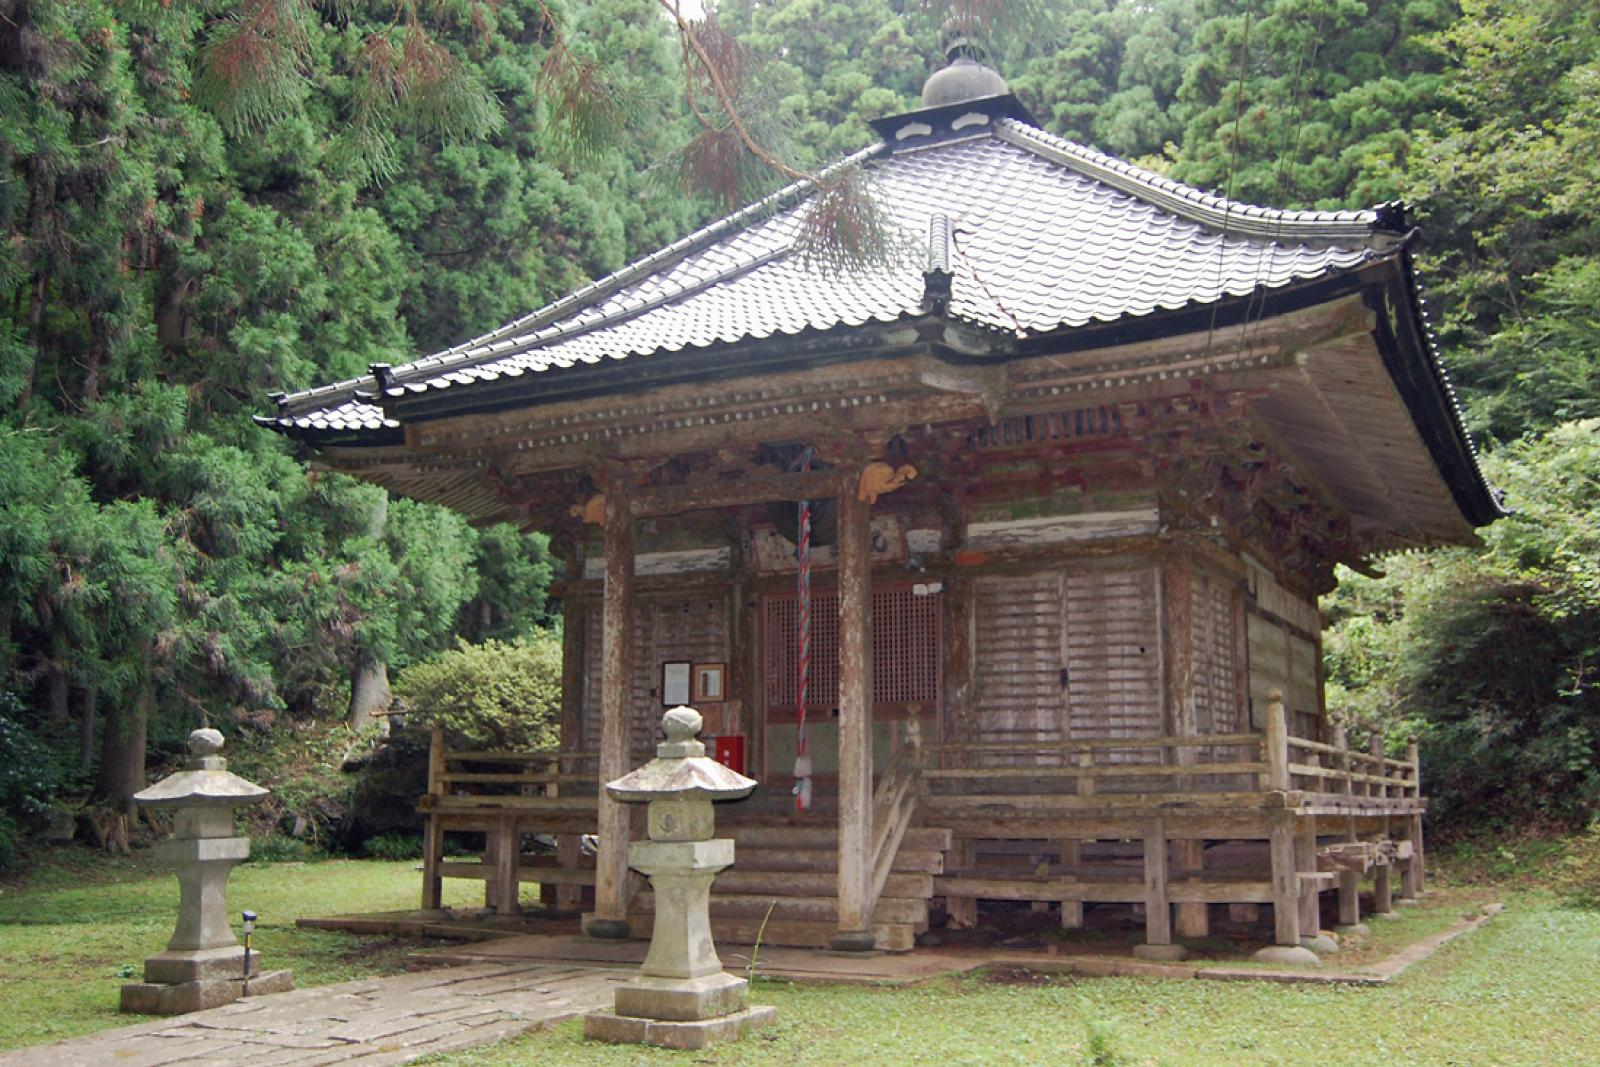 Tatsugane Kannon-do temple 田束観音堂